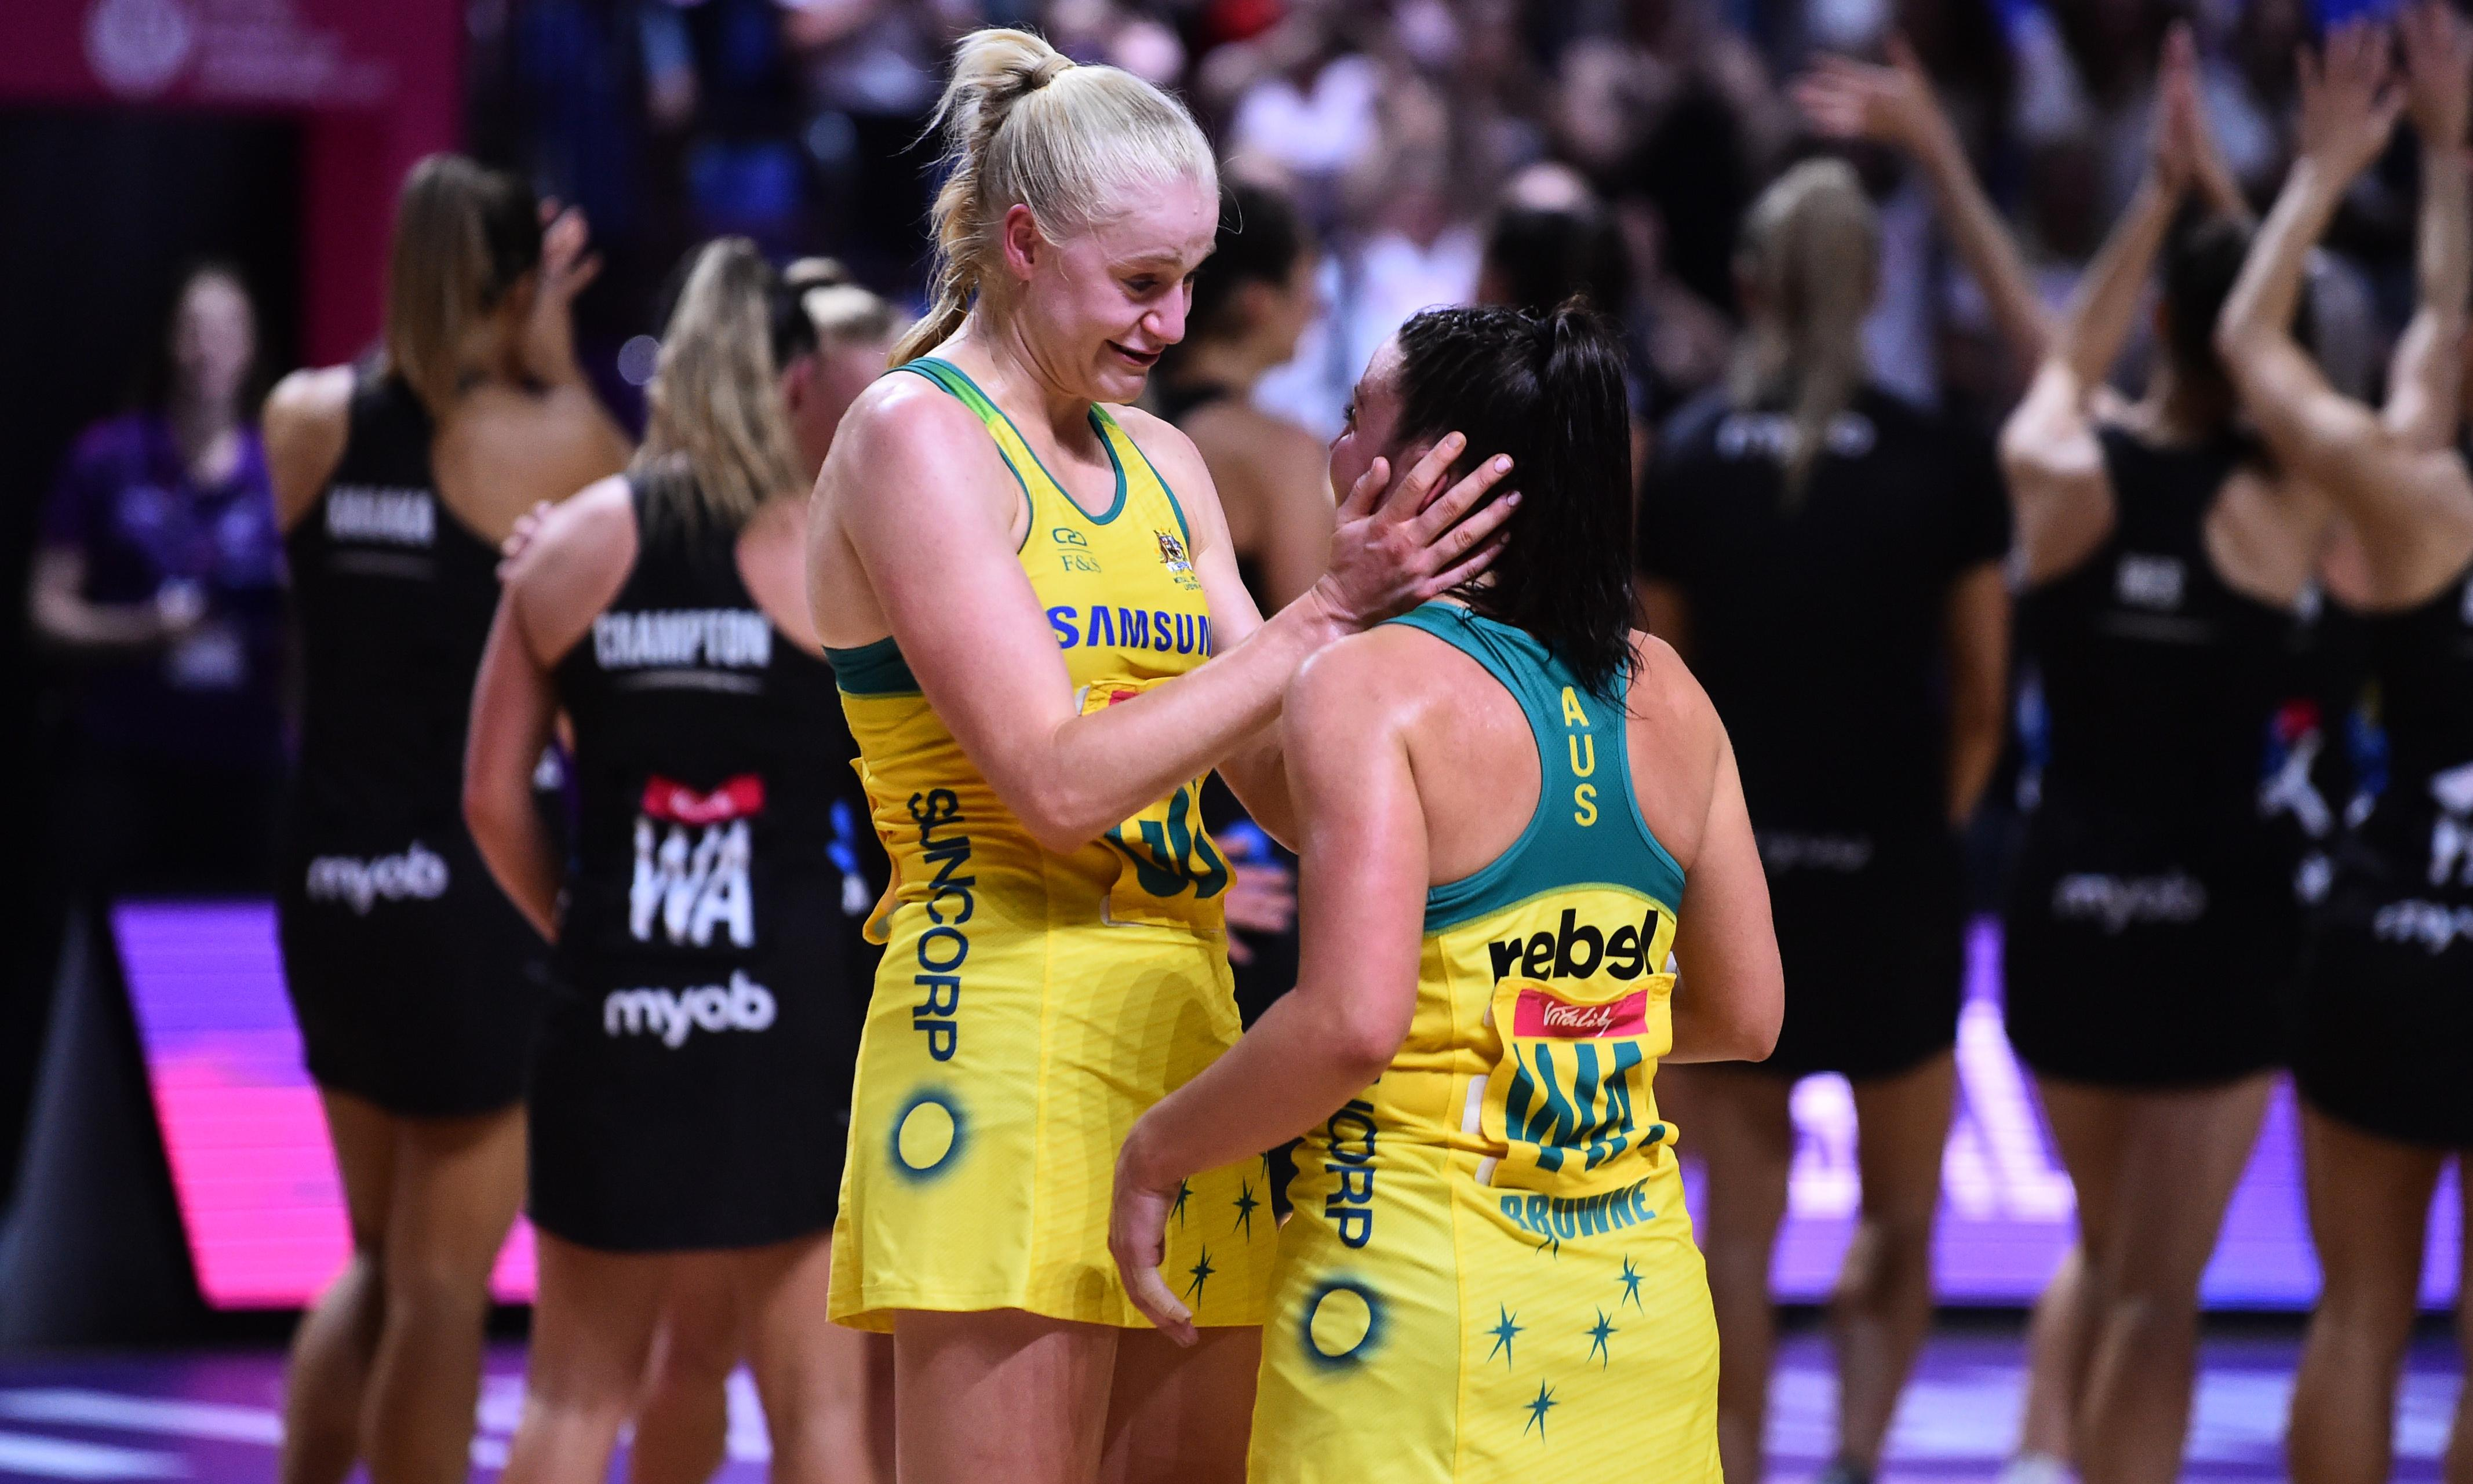 'It's not good enough': Australian Netball World Cup defeat prompts soul-searching